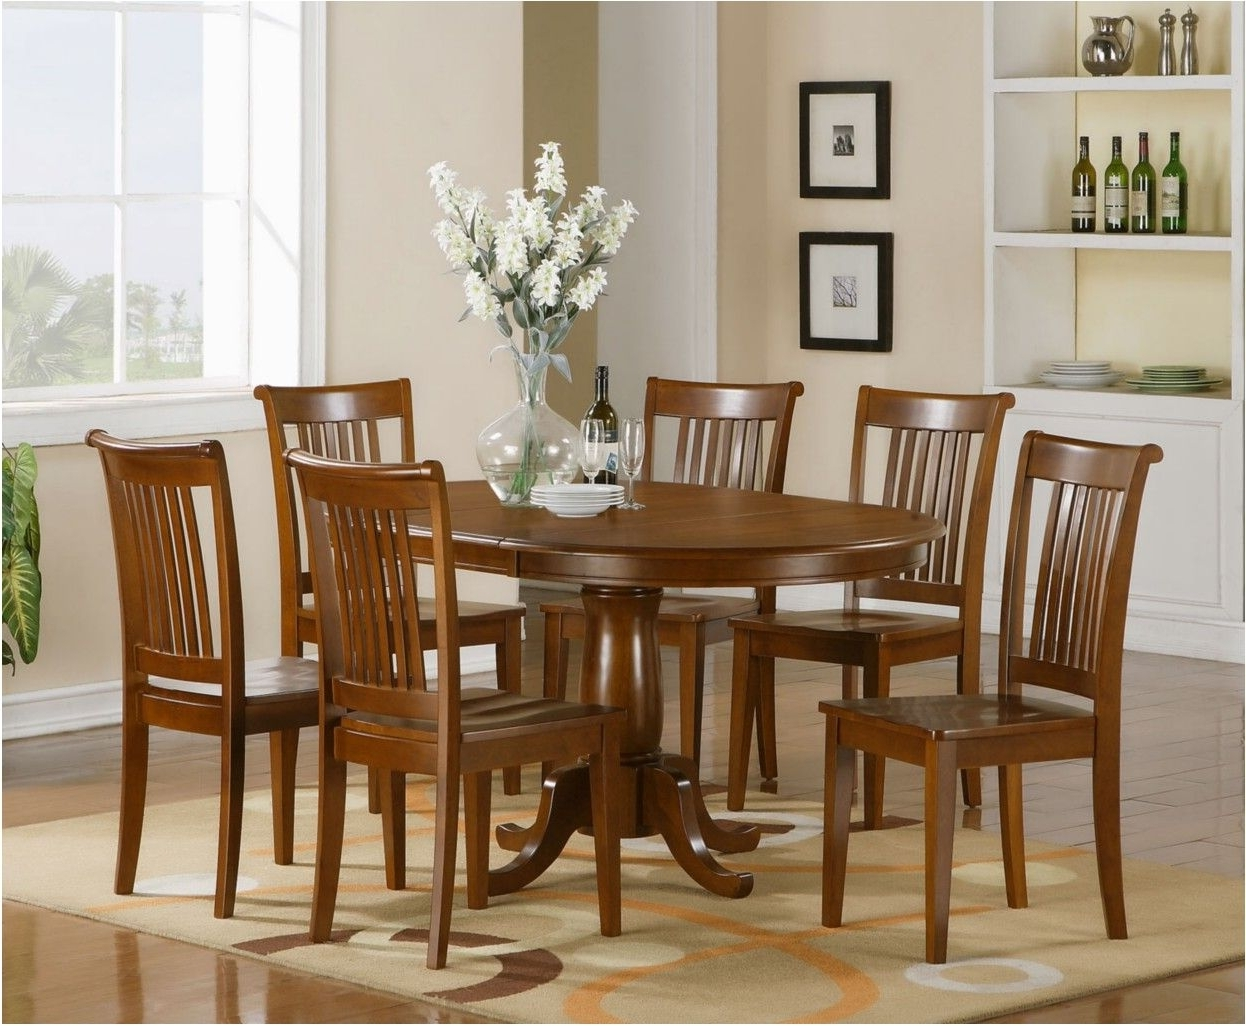 Best And Newest Excellently Dining Room Tables And Chairs Simple With Photo Of Round Intended For Dining Room Chairs (Gallery 11 of 25)